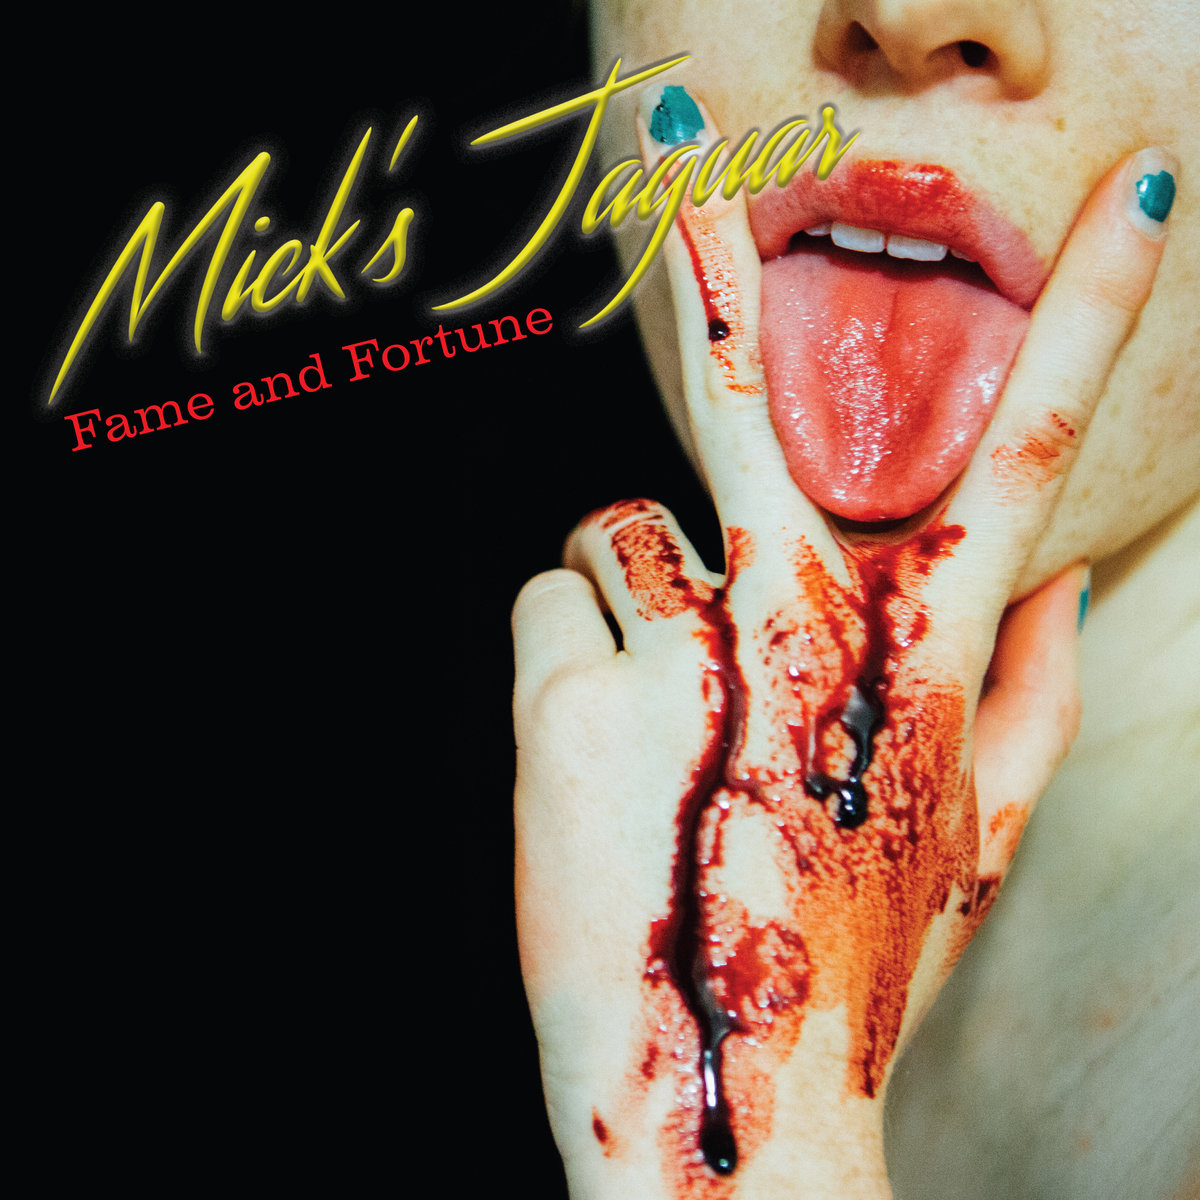 micks jaguar fame and fortune